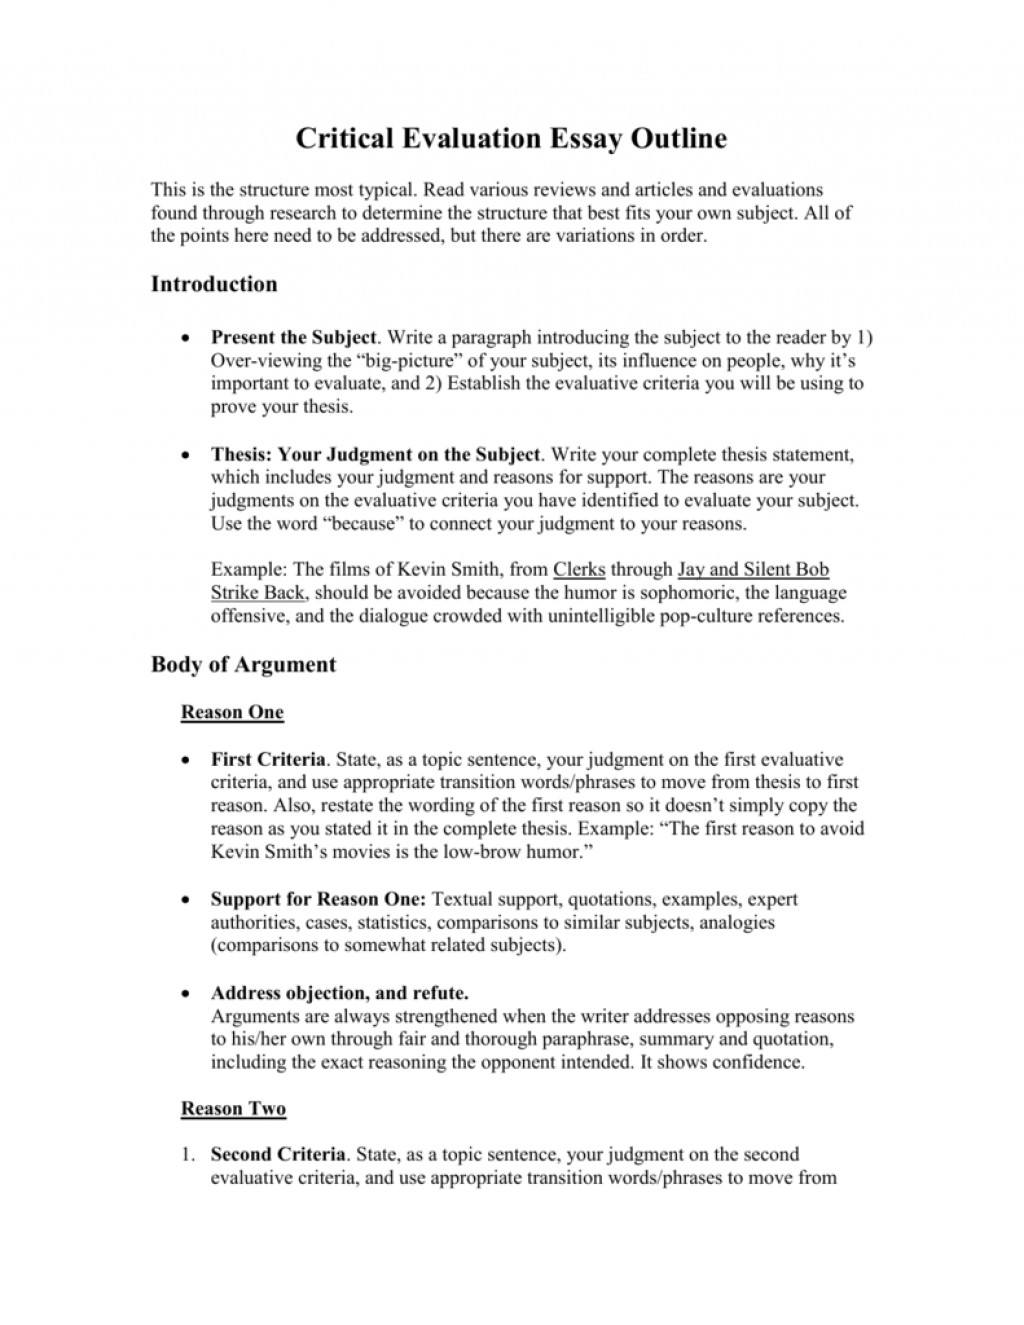 001 Essay Example 007278317 1 Evaluation Unforgettable Outline Movie Review Paper Layout Source Large